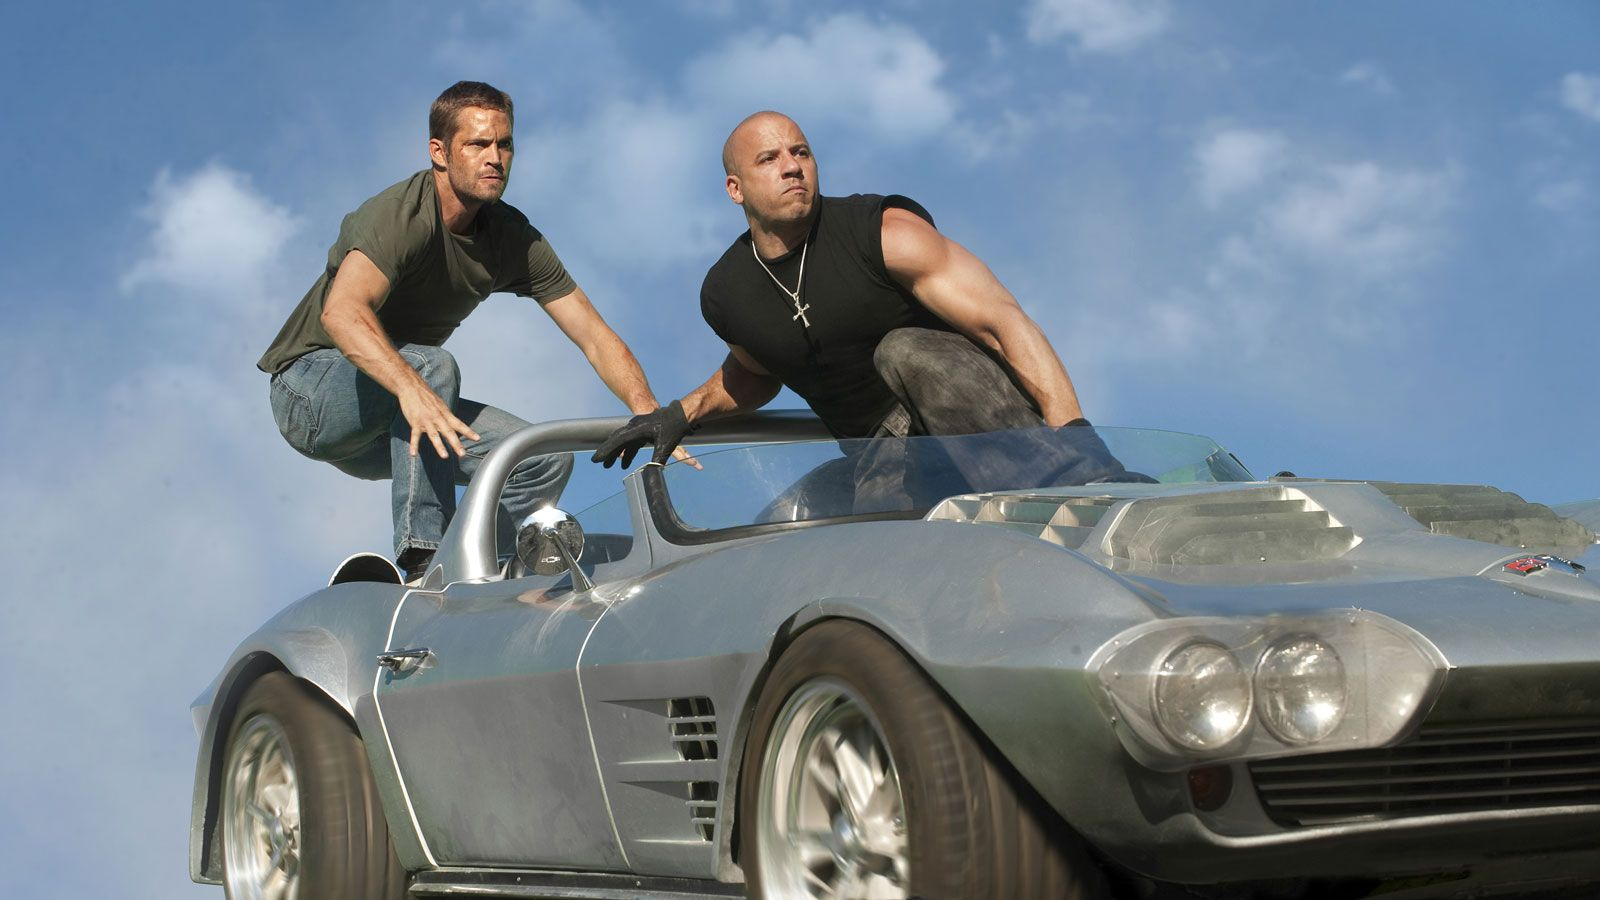 http://2.bp.blogspot.com/-YfUuGvRUx9E/TcUEgRBFBKI/AAAAAAAABvI/KJ2h76a0Sxs/s1600/fast-and-furious-5-photo-vin-diesel-paul-walker.jpg